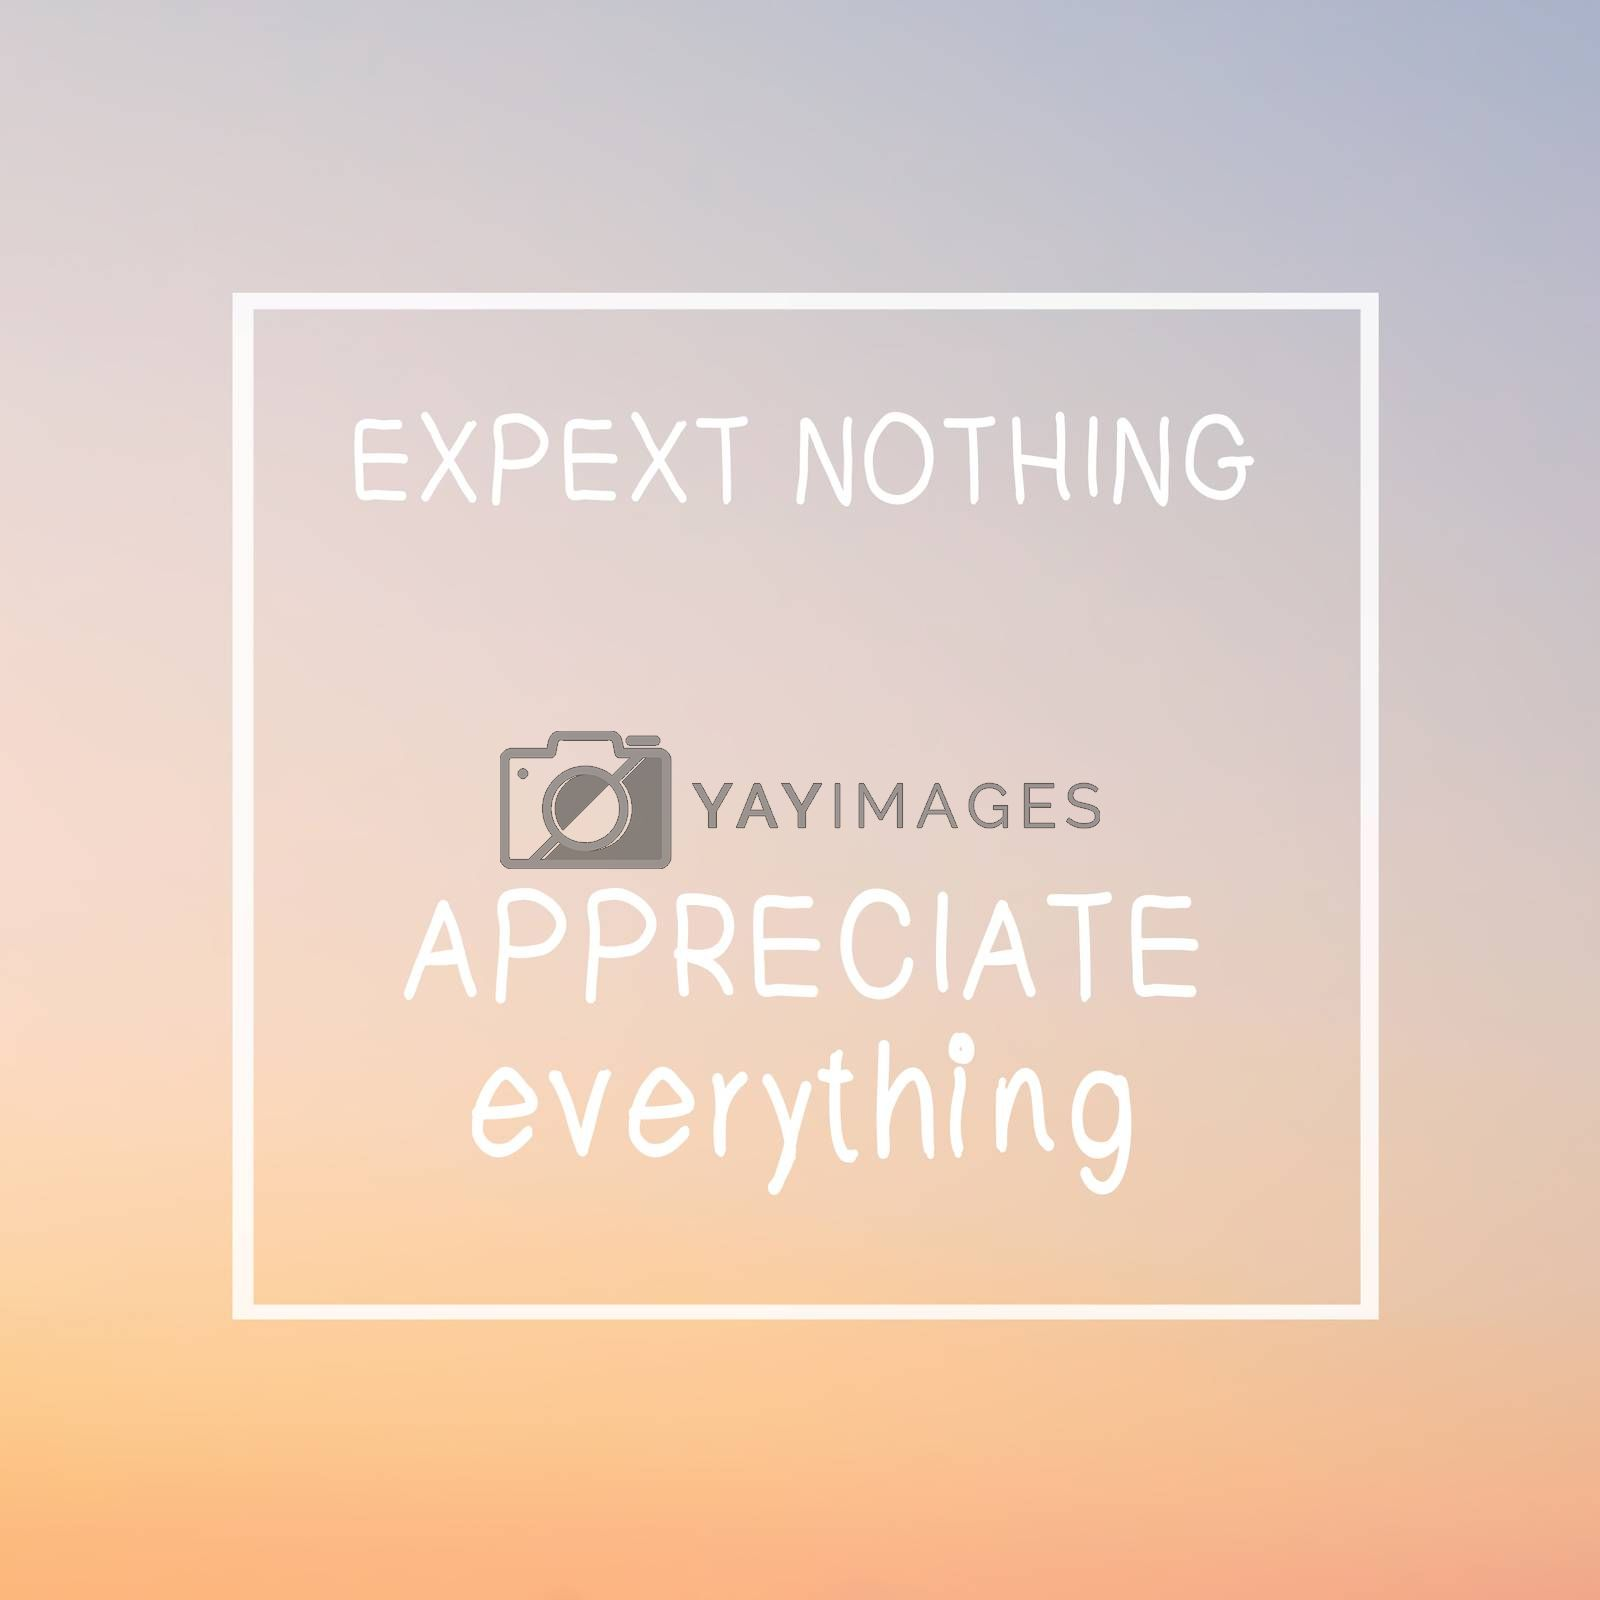 Inspirational motivating quote on blurred background with retro filter effect